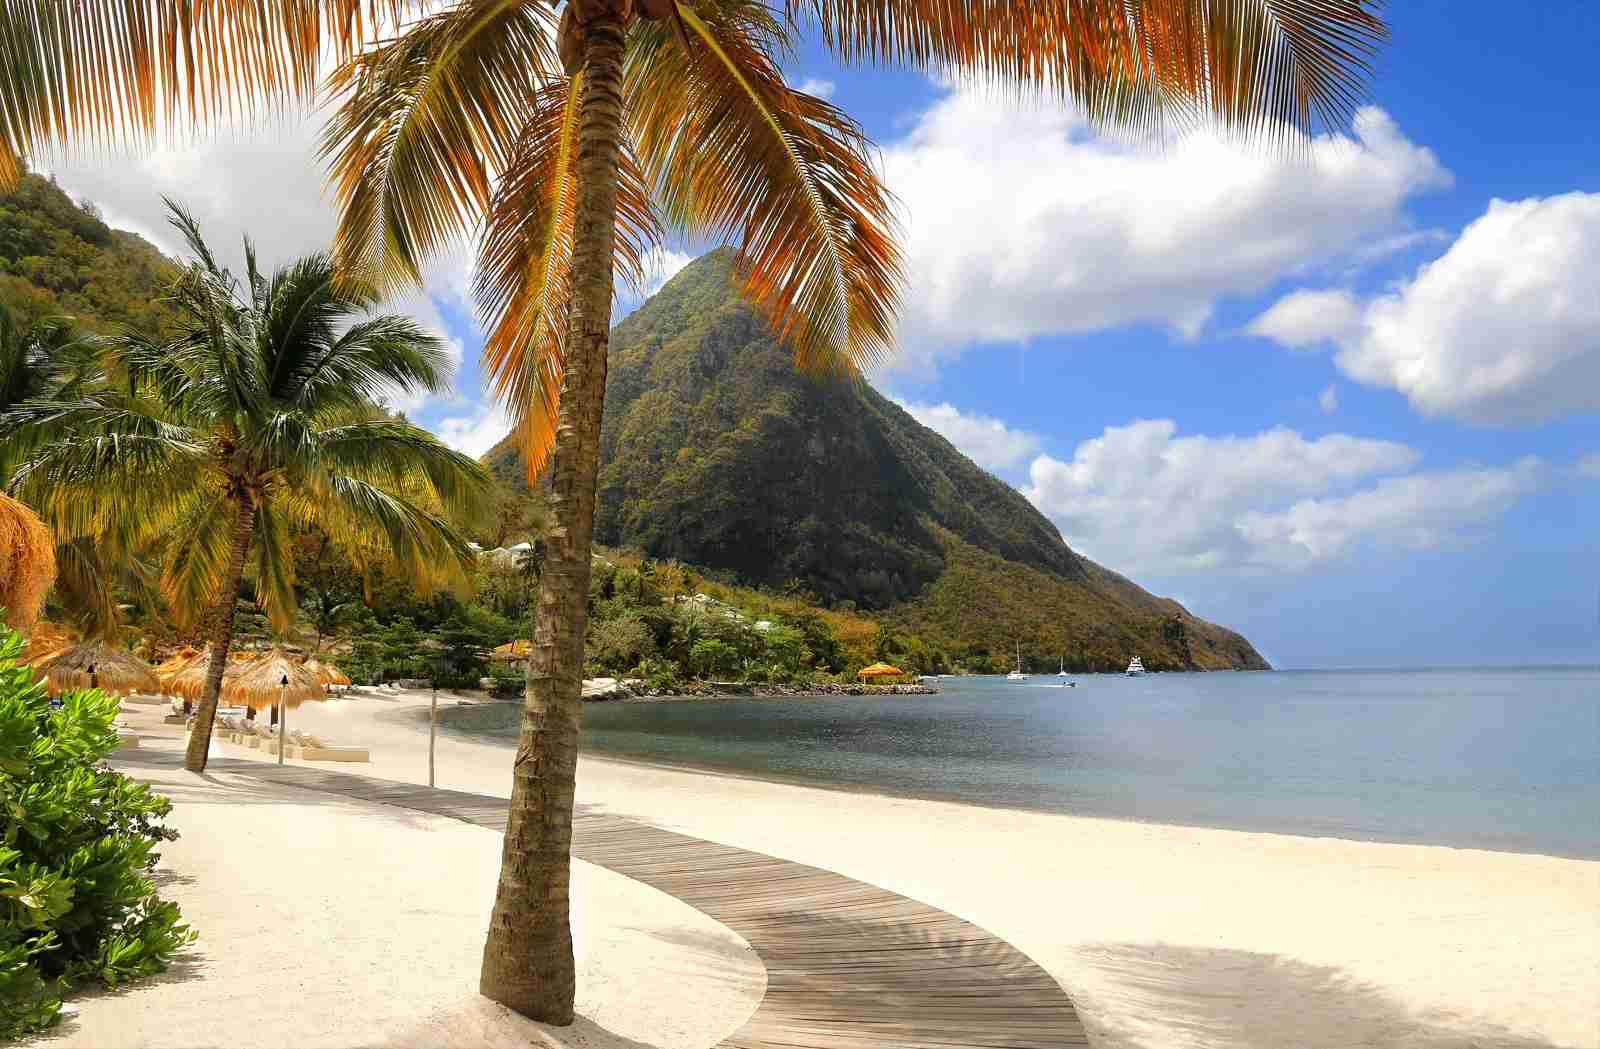 Sugar Beach, St. Lucia. (Photo by Inga Locmele/Shutterstock)